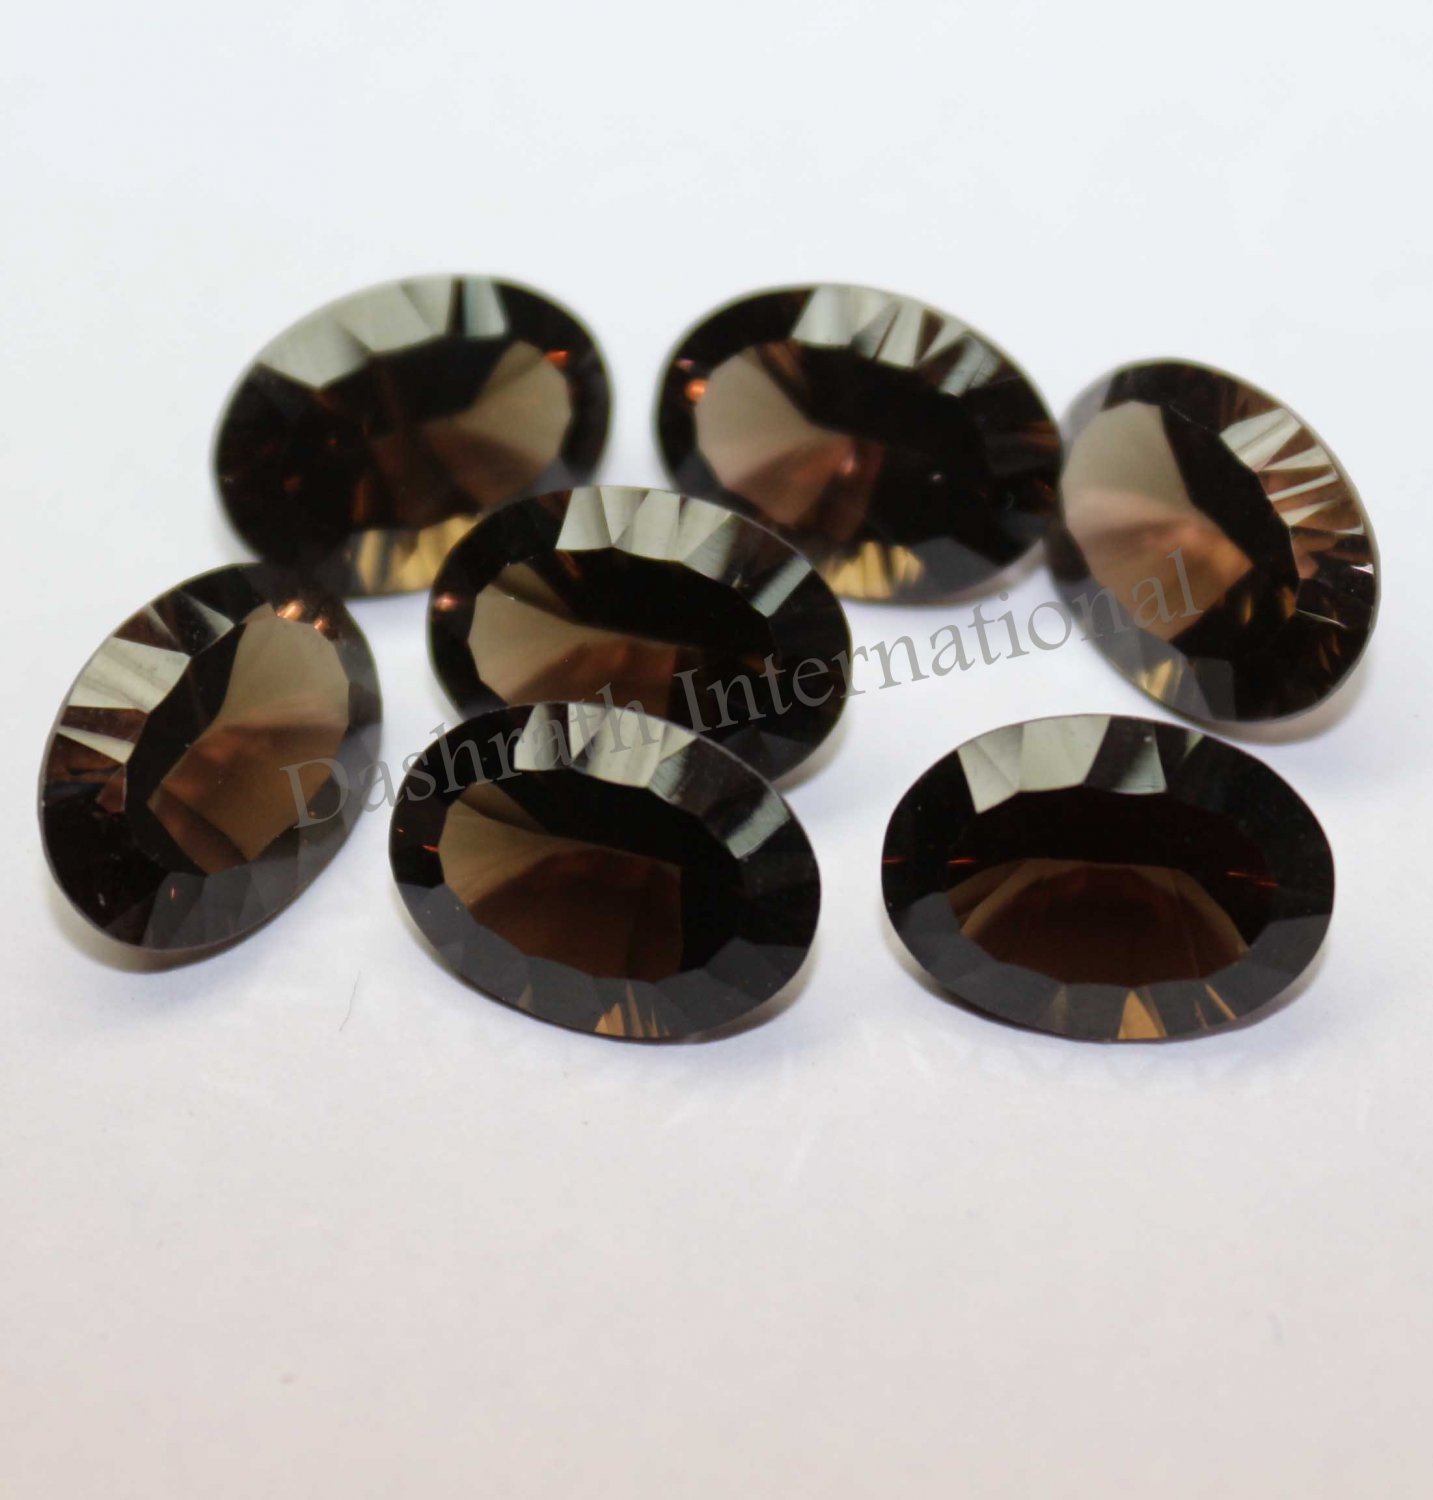 15x20mm Natural Smoky Quartz Concave Cut  Oval 1 Piece  (SI) Top Quality  Loose Gemstone